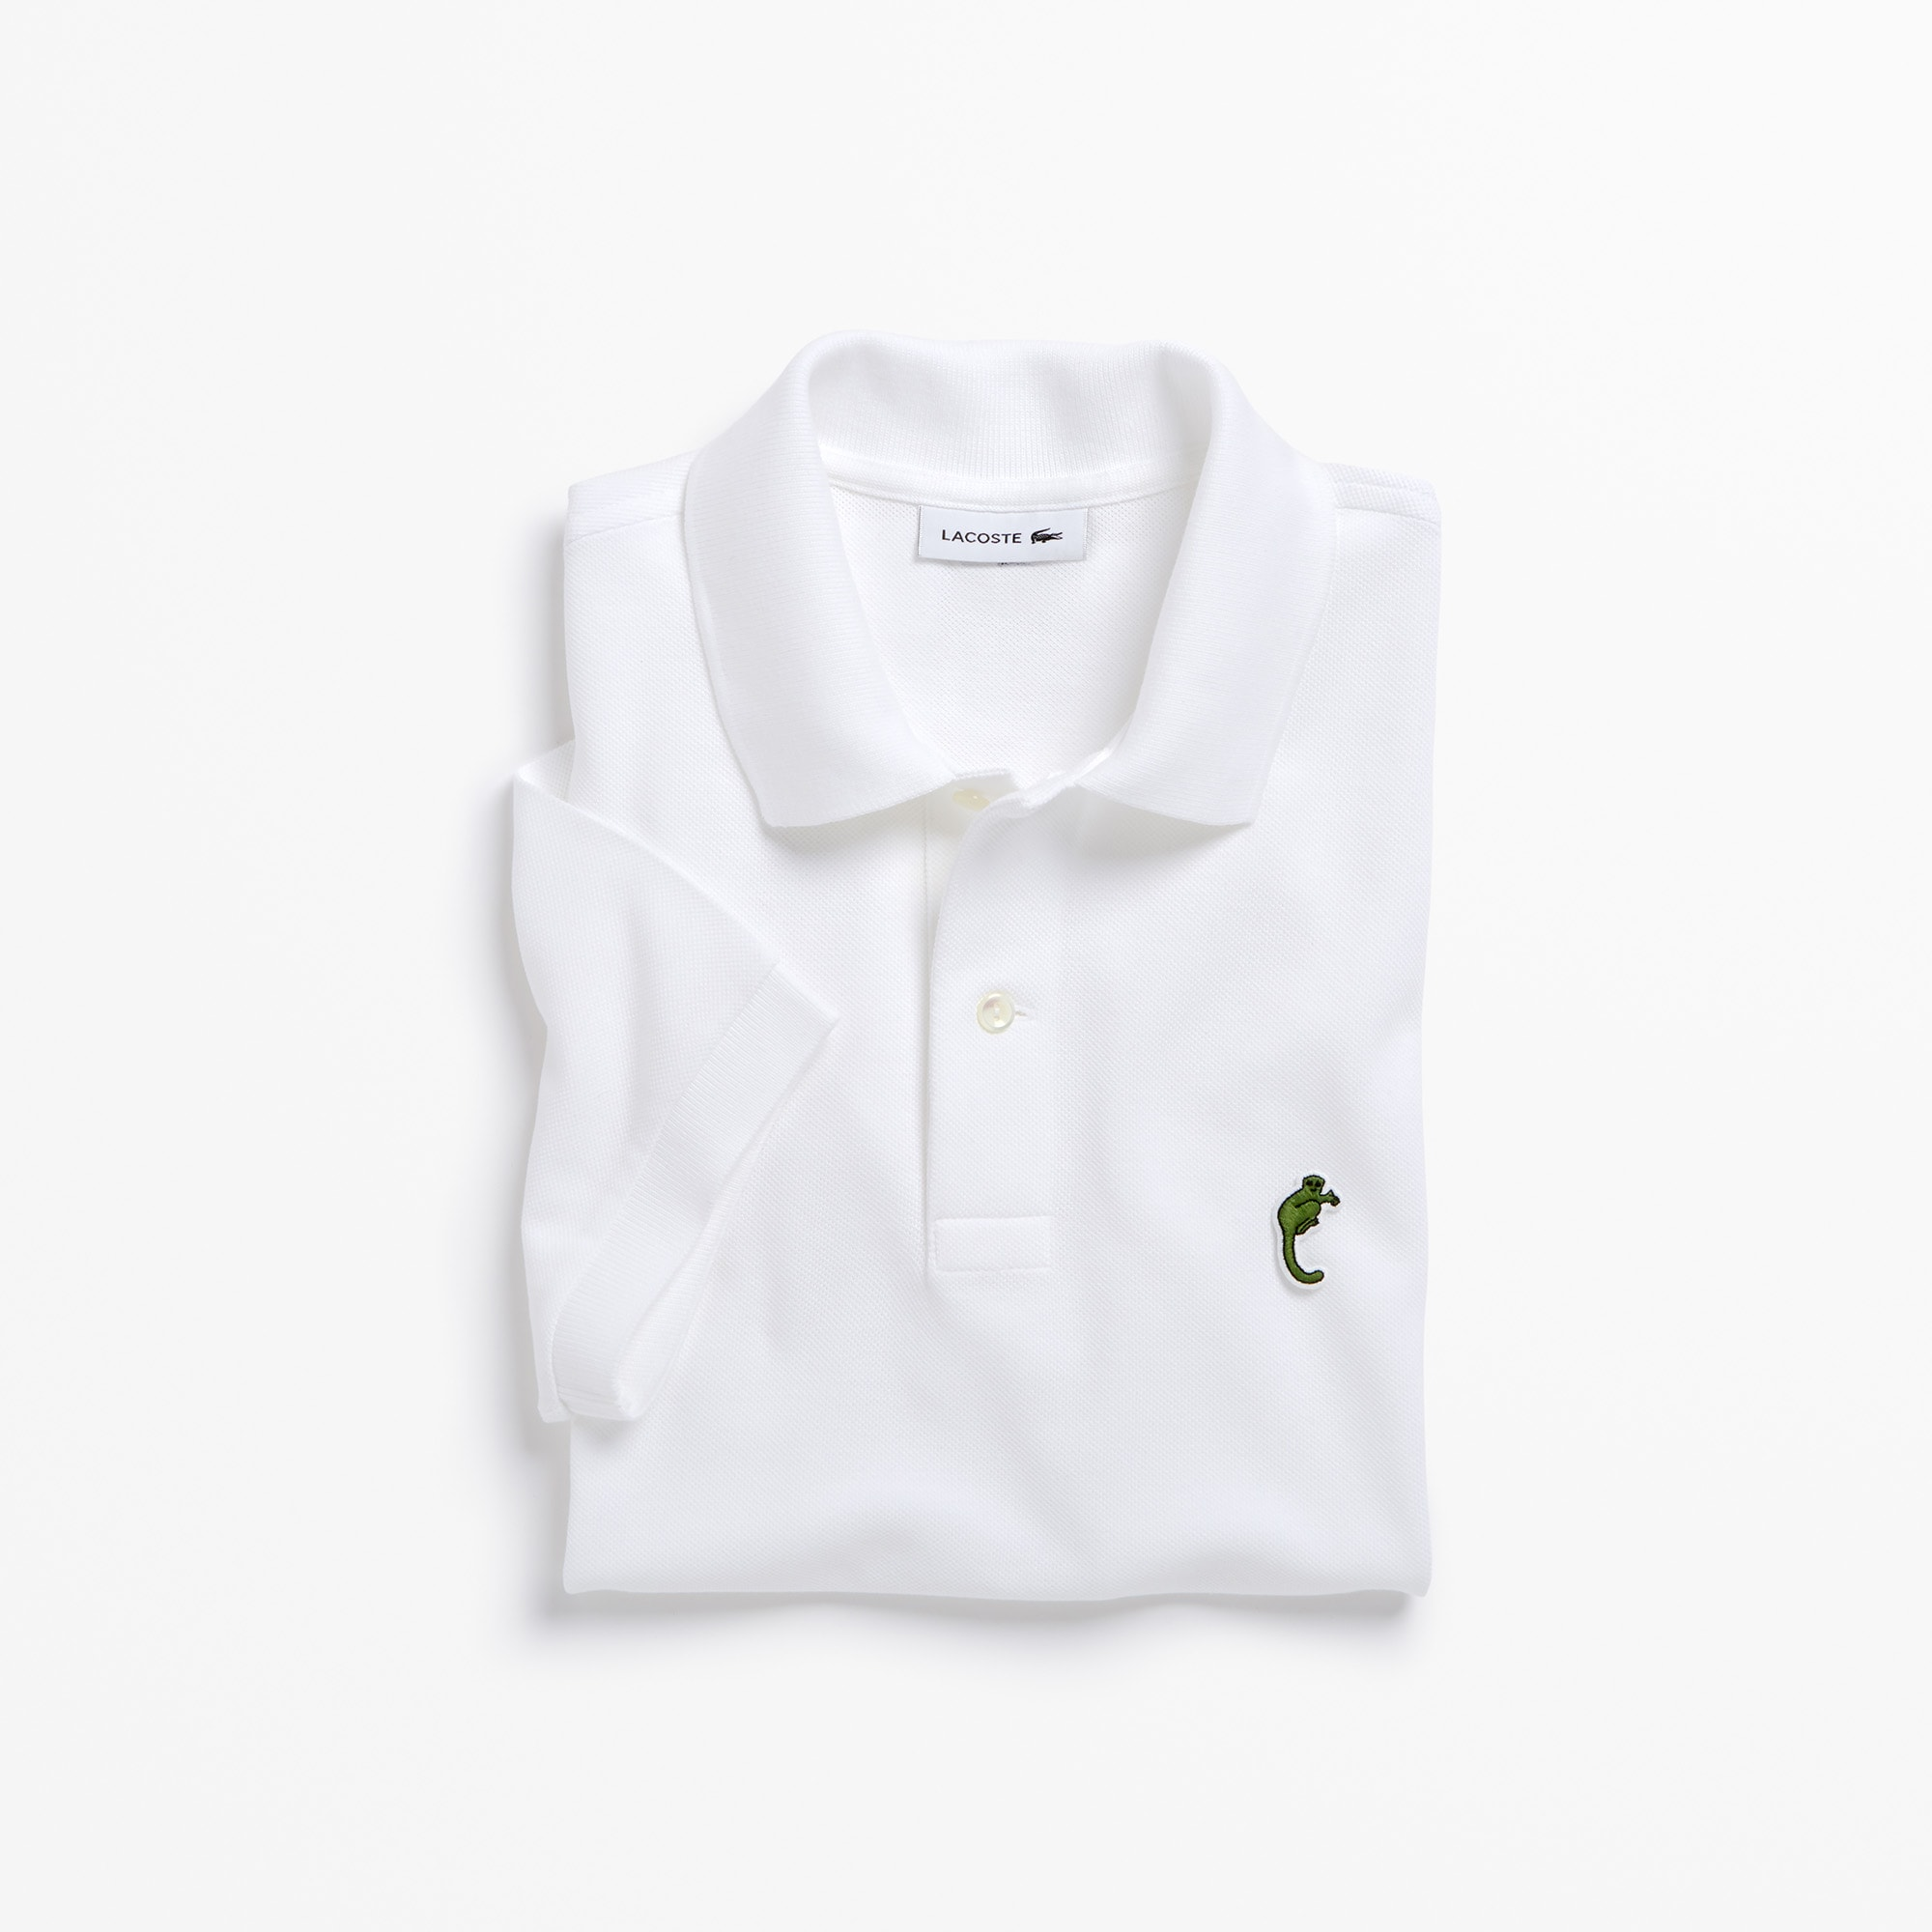 Polo Shirt Lacoste The Northern sportive Lemur